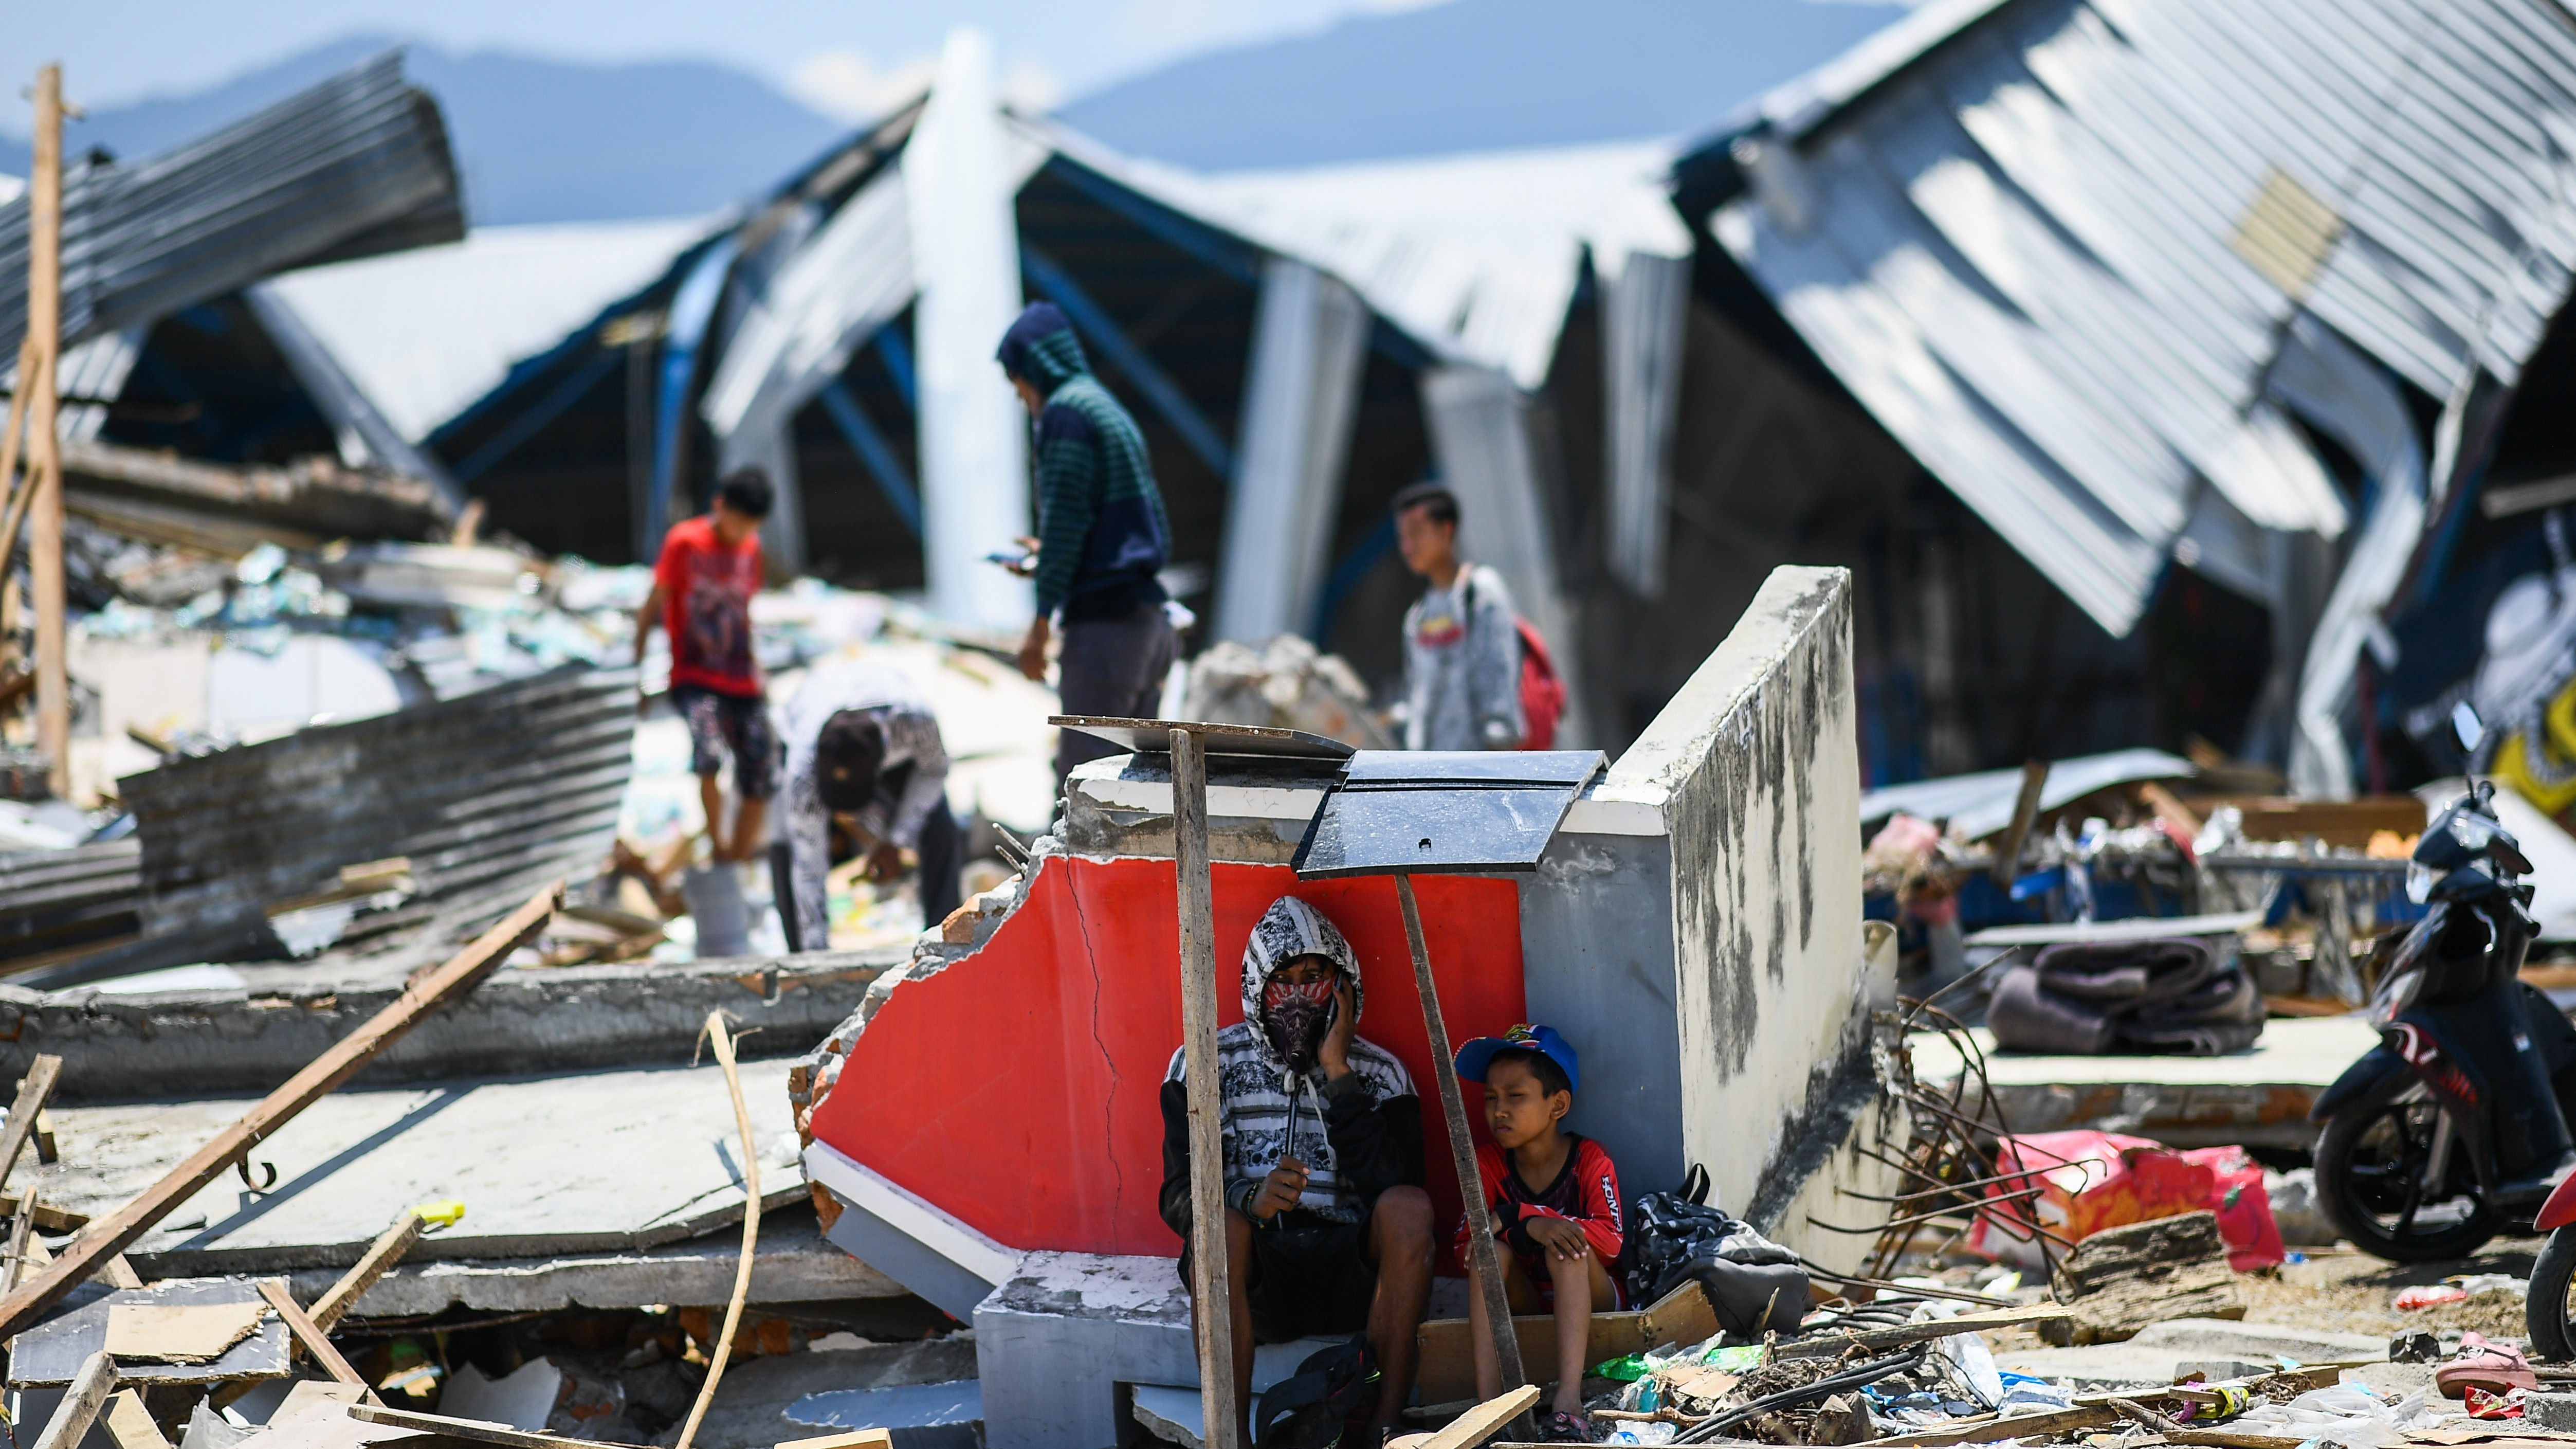 Indonesia is caught in a trifecta of natural disasters